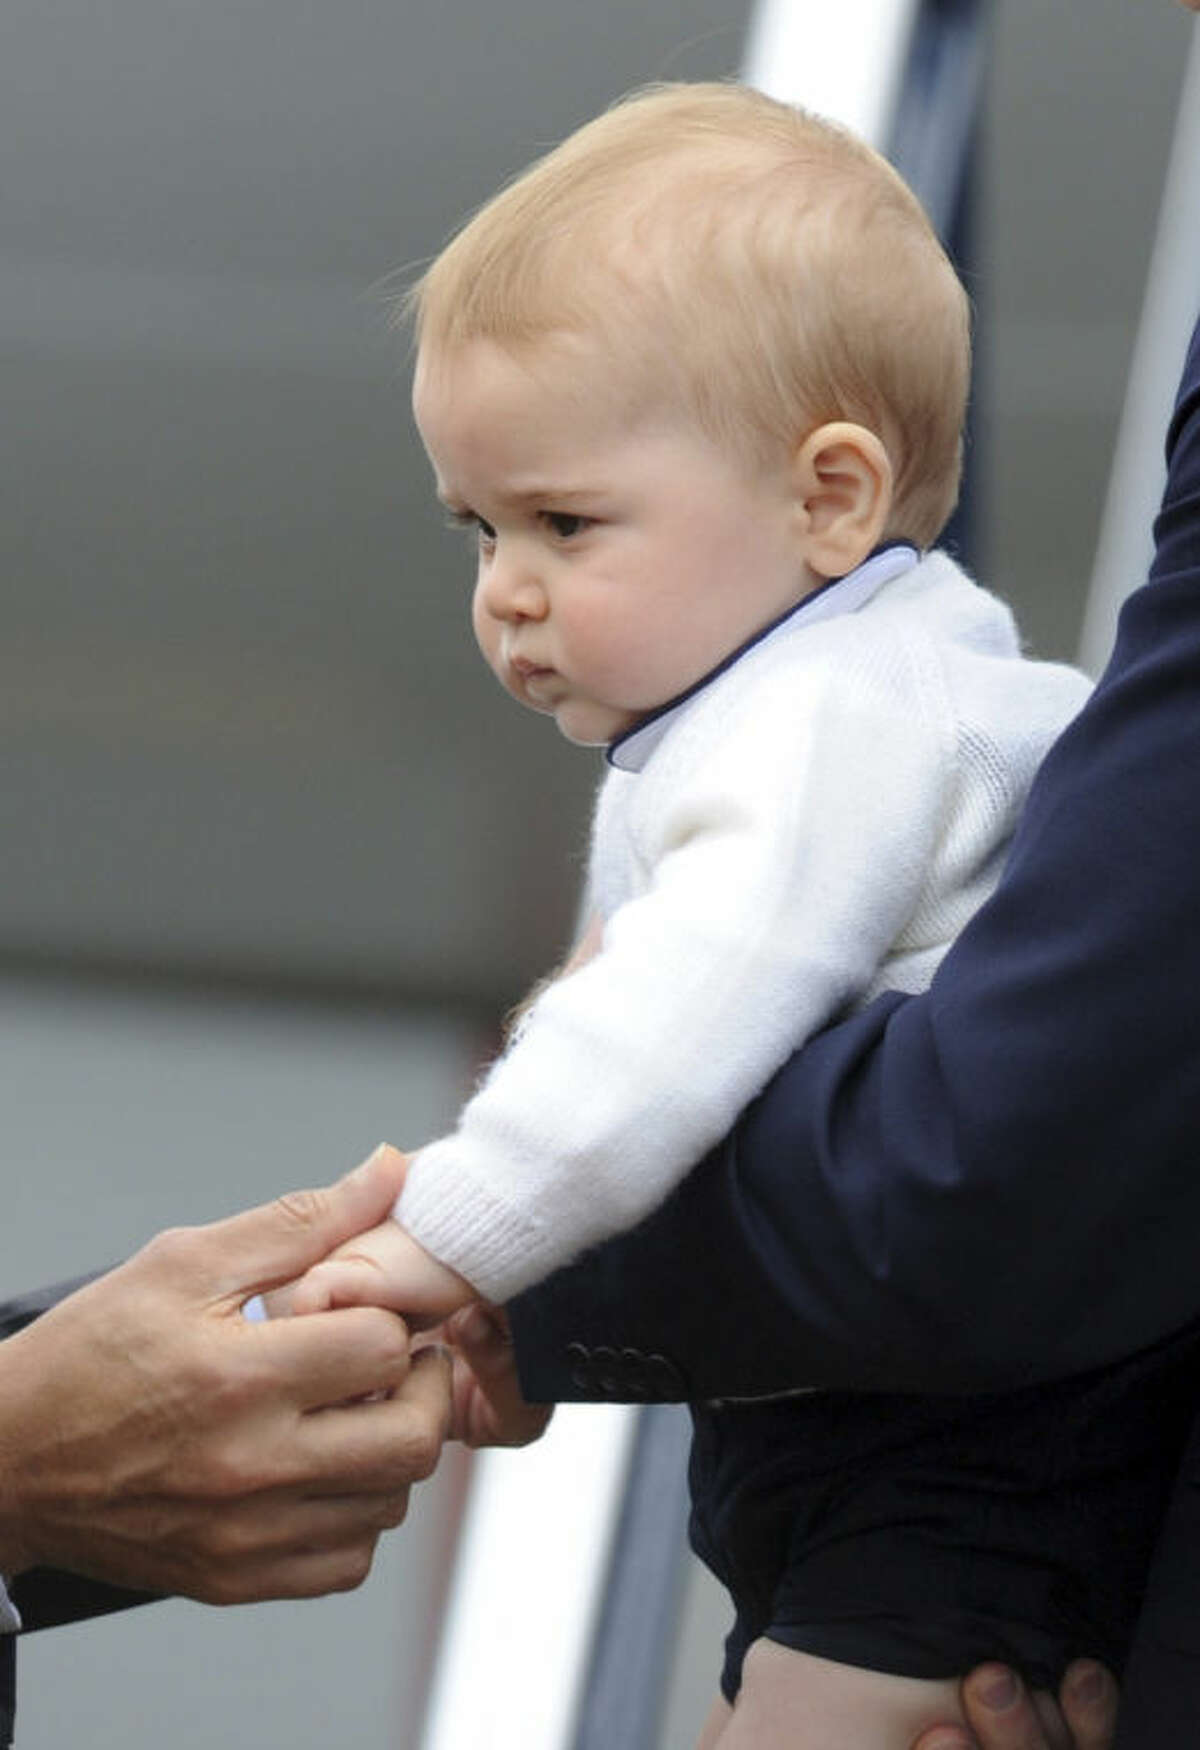 """FILE - This is a Wednesday, April 16, 2014 file photo of Britain's Prince George's as his hand is held by New Zealand Governor General Jerry Mateparae as he leaves with his parents Prince William and Kate, the Duchess of Cambridge on a plane bound for Sydney, Australia from Wellington, New Zealand. Prince George turns 1 on Tuesday. While he may be too young to appreciate it, the milestone is causing a nationwide frenzy. Editorial writers call him a symbol of hope, newspaper headlines hail him as """"Gorgeous George"""" and one published a 24-page glossy magazine chronicling his first 12 months. (AP Photo/SNPA, Ross Setford, File) NEW ZEALAND OUT"""